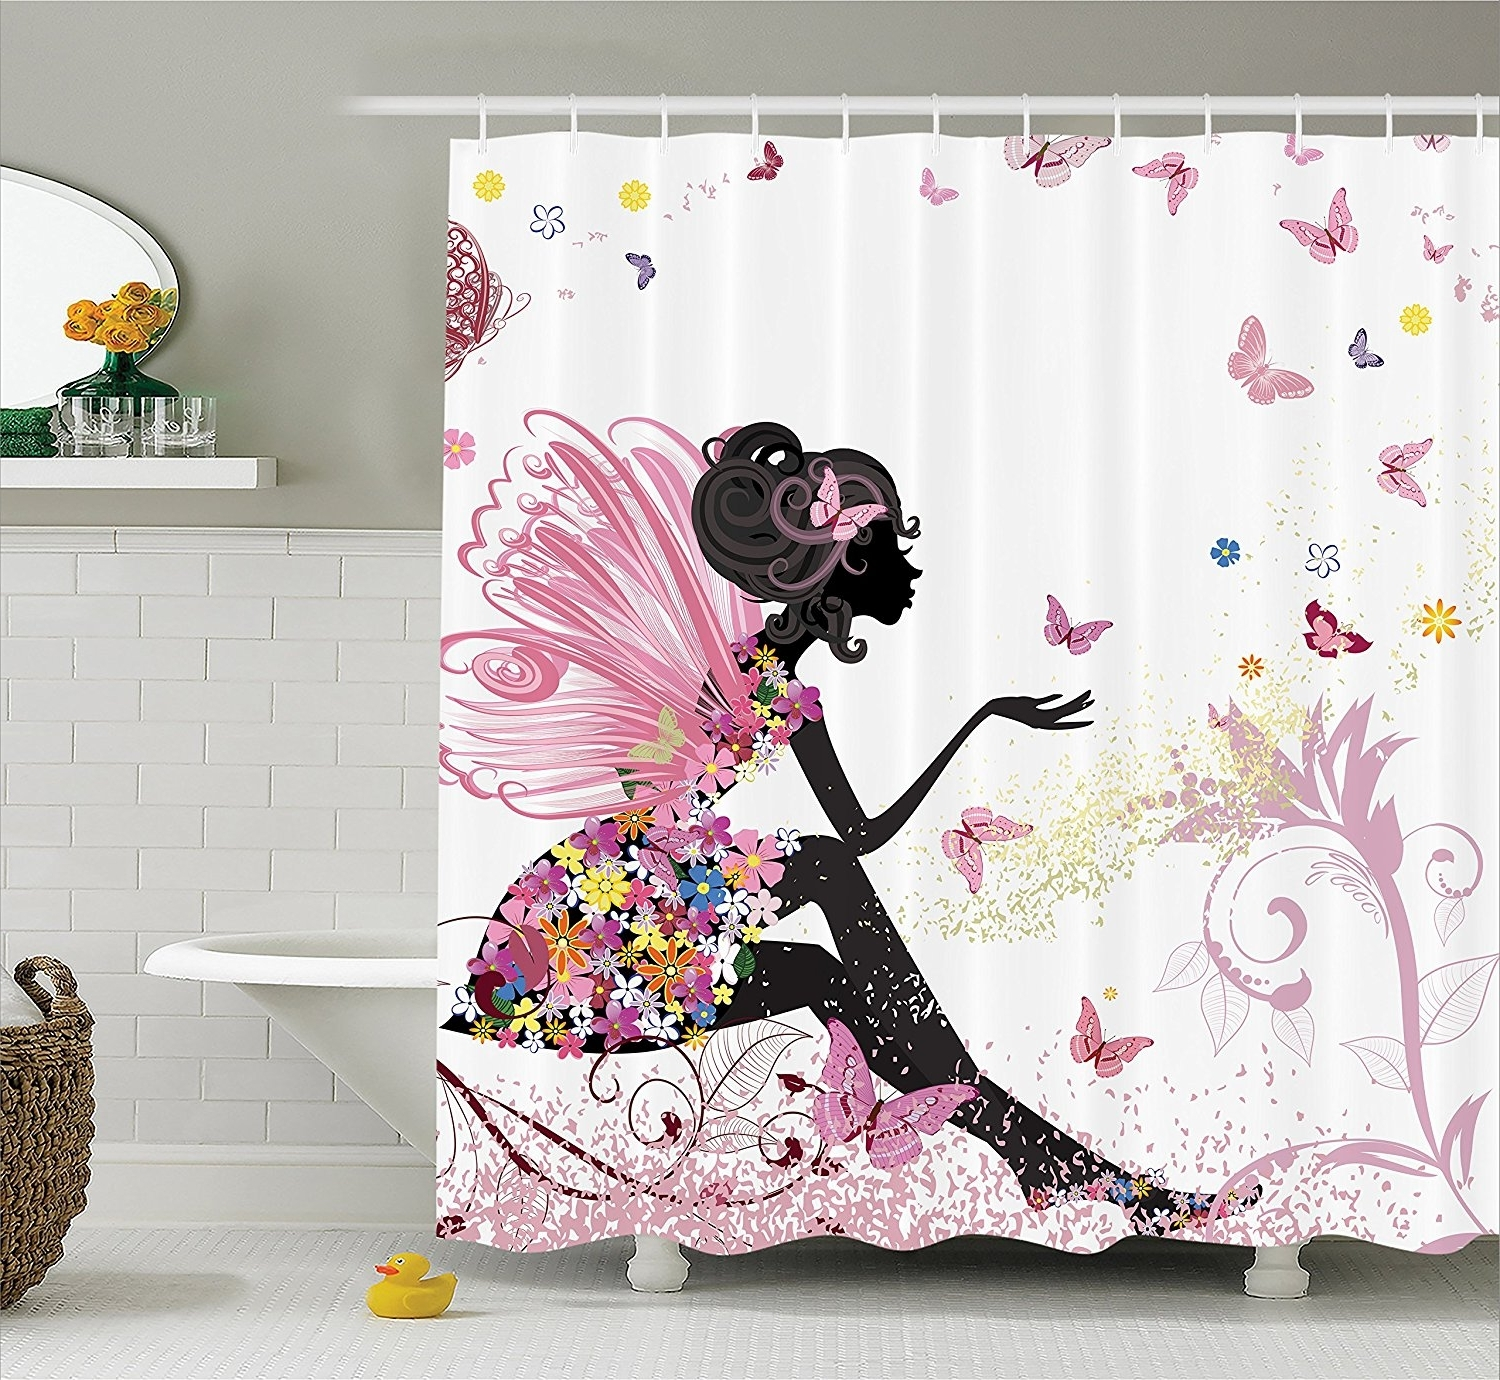 Famous Fabric Dress Wall Art In Pink Butterfly Girl With Floral Dress Flower Design Fairy Angel (View 1 of 15)